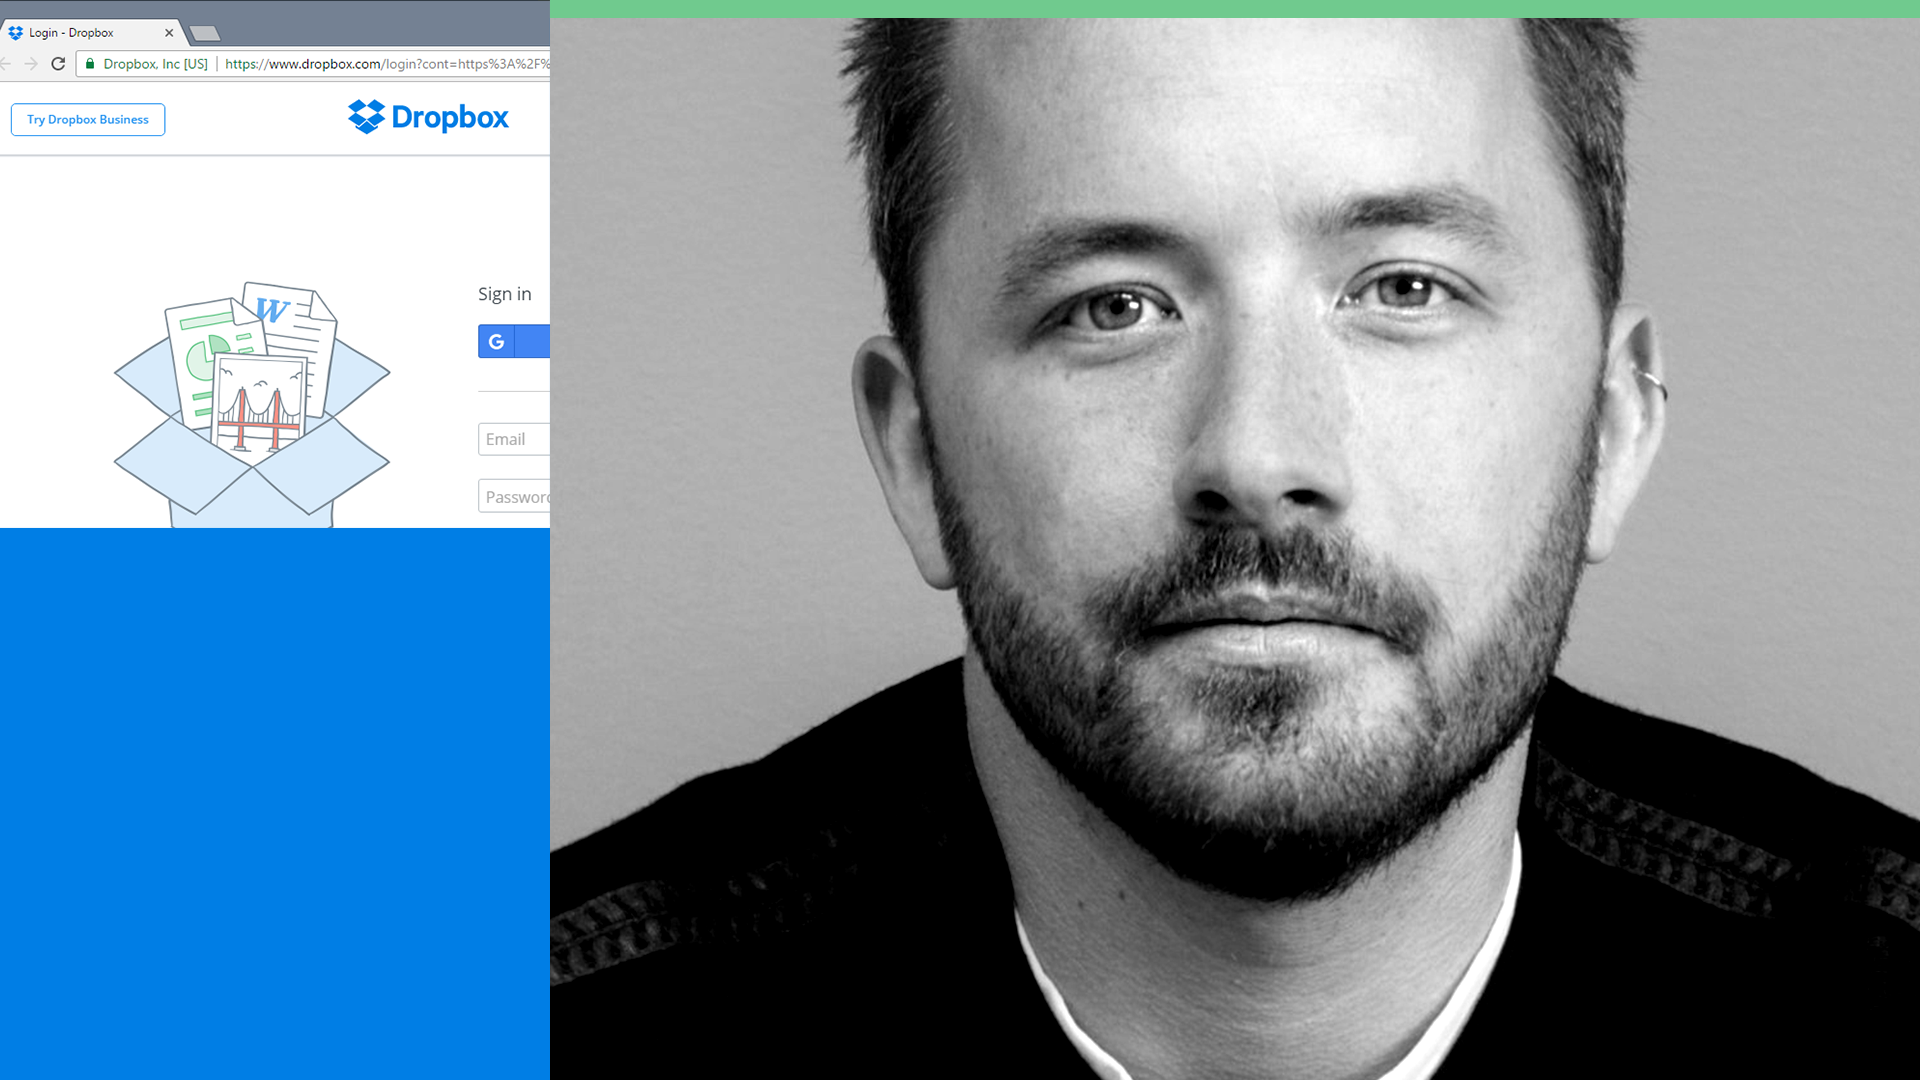 Dropbox co-founder and CEO Drew Houston